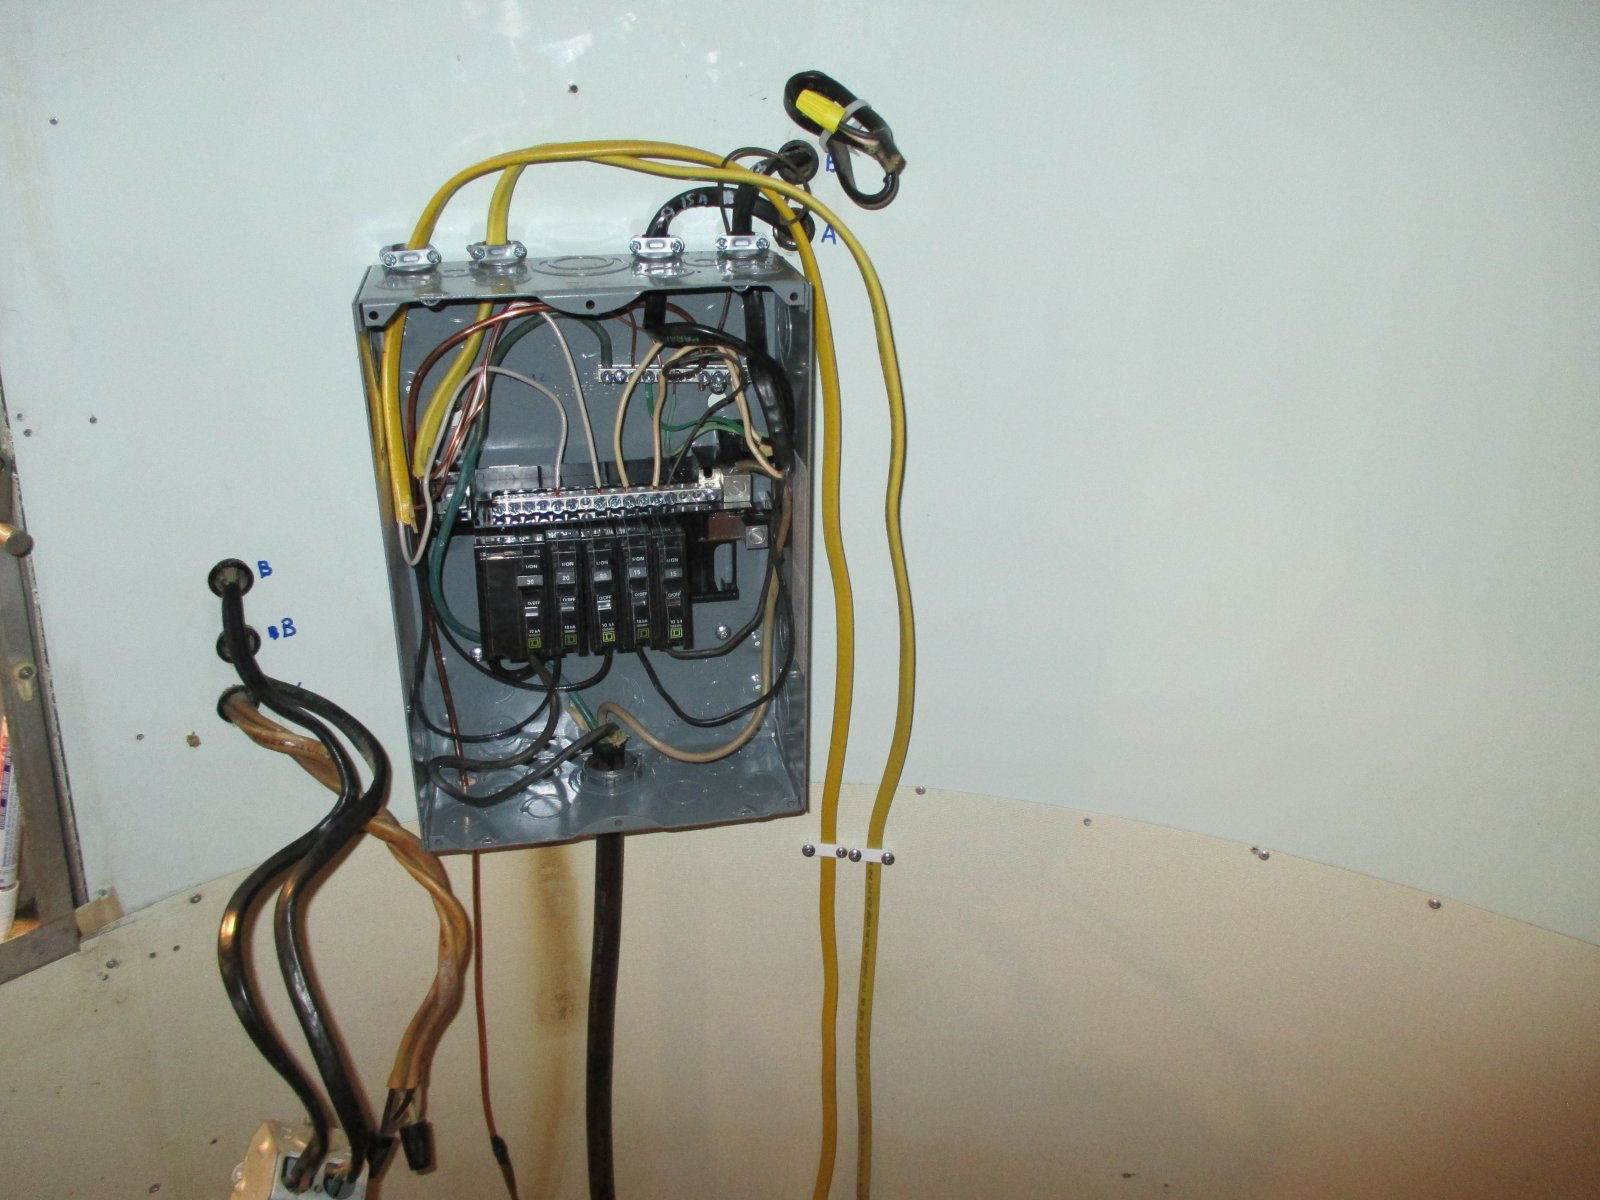 Install New 120v Circuit and Outlet - Airstream Forums